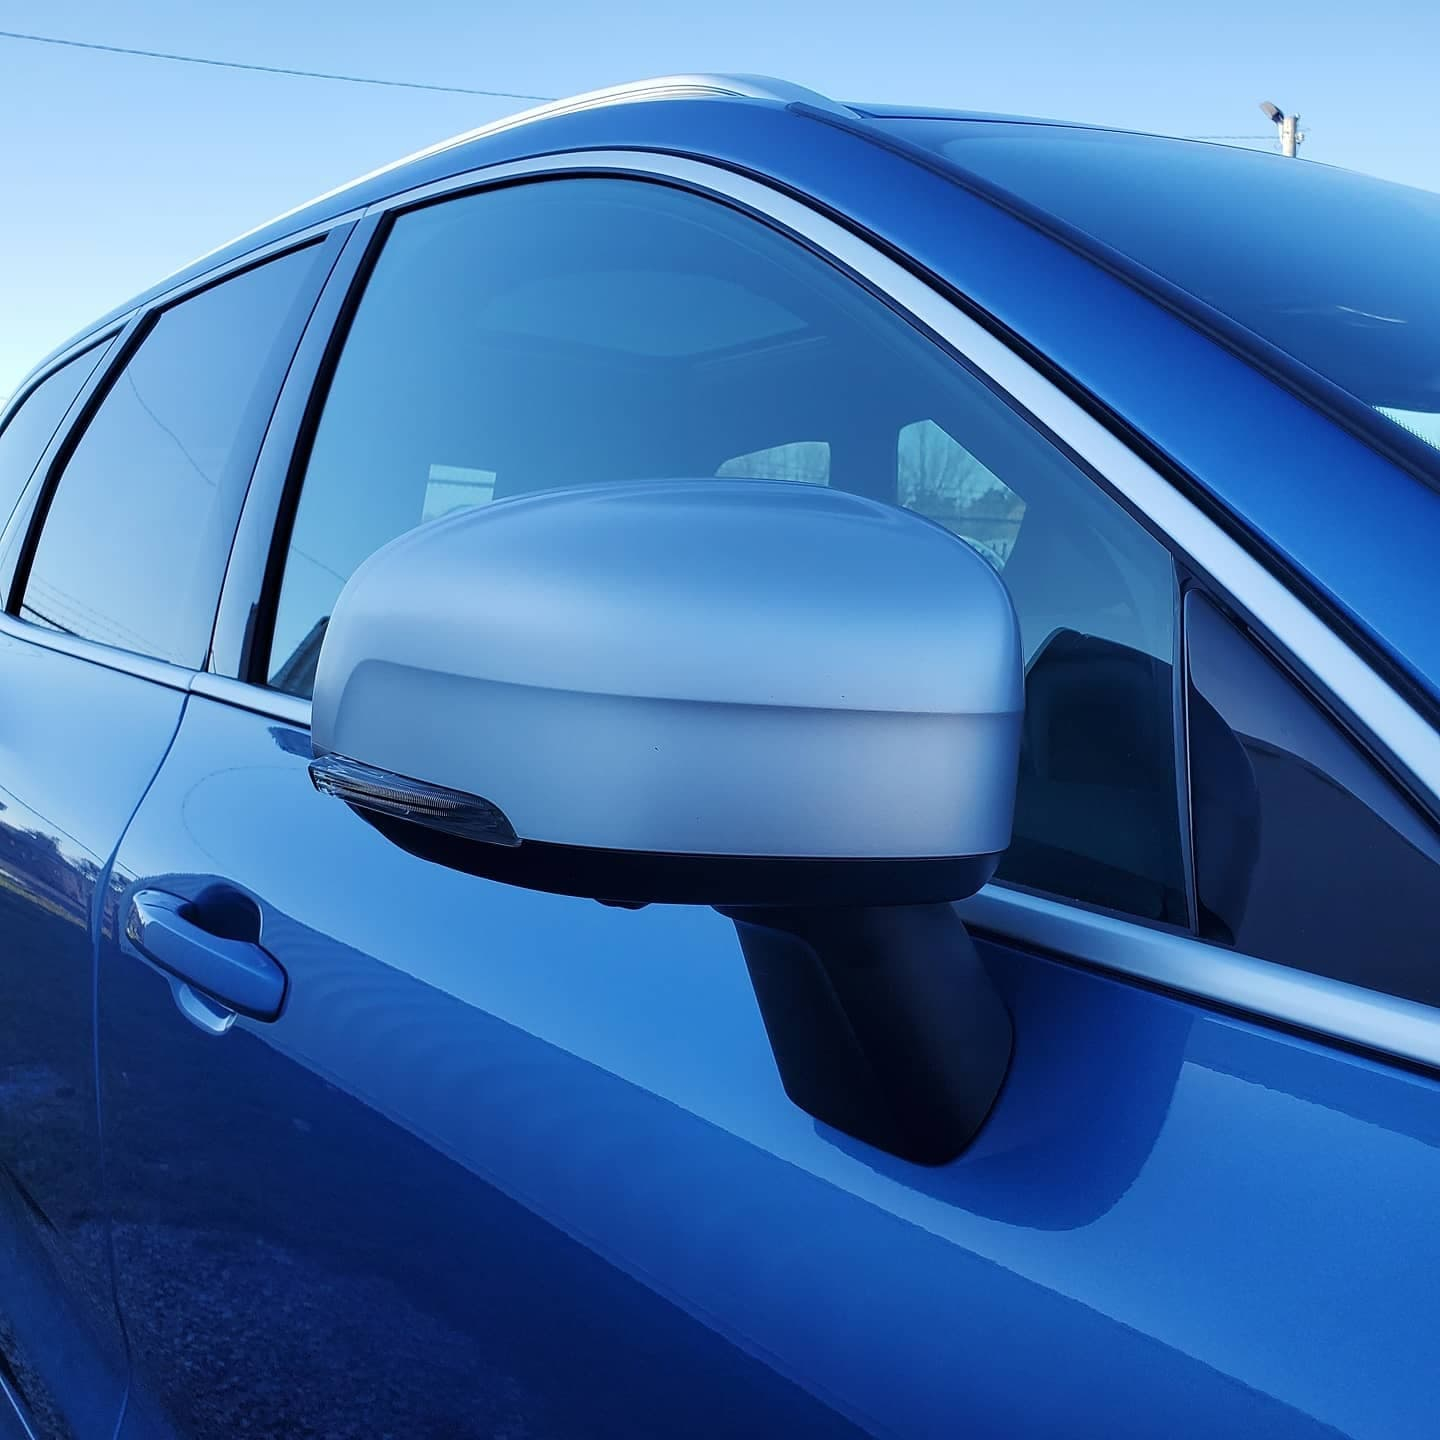 Blue car's mirror and window done at Autobuf fine car detailing and restyling in Kingston, Ontario